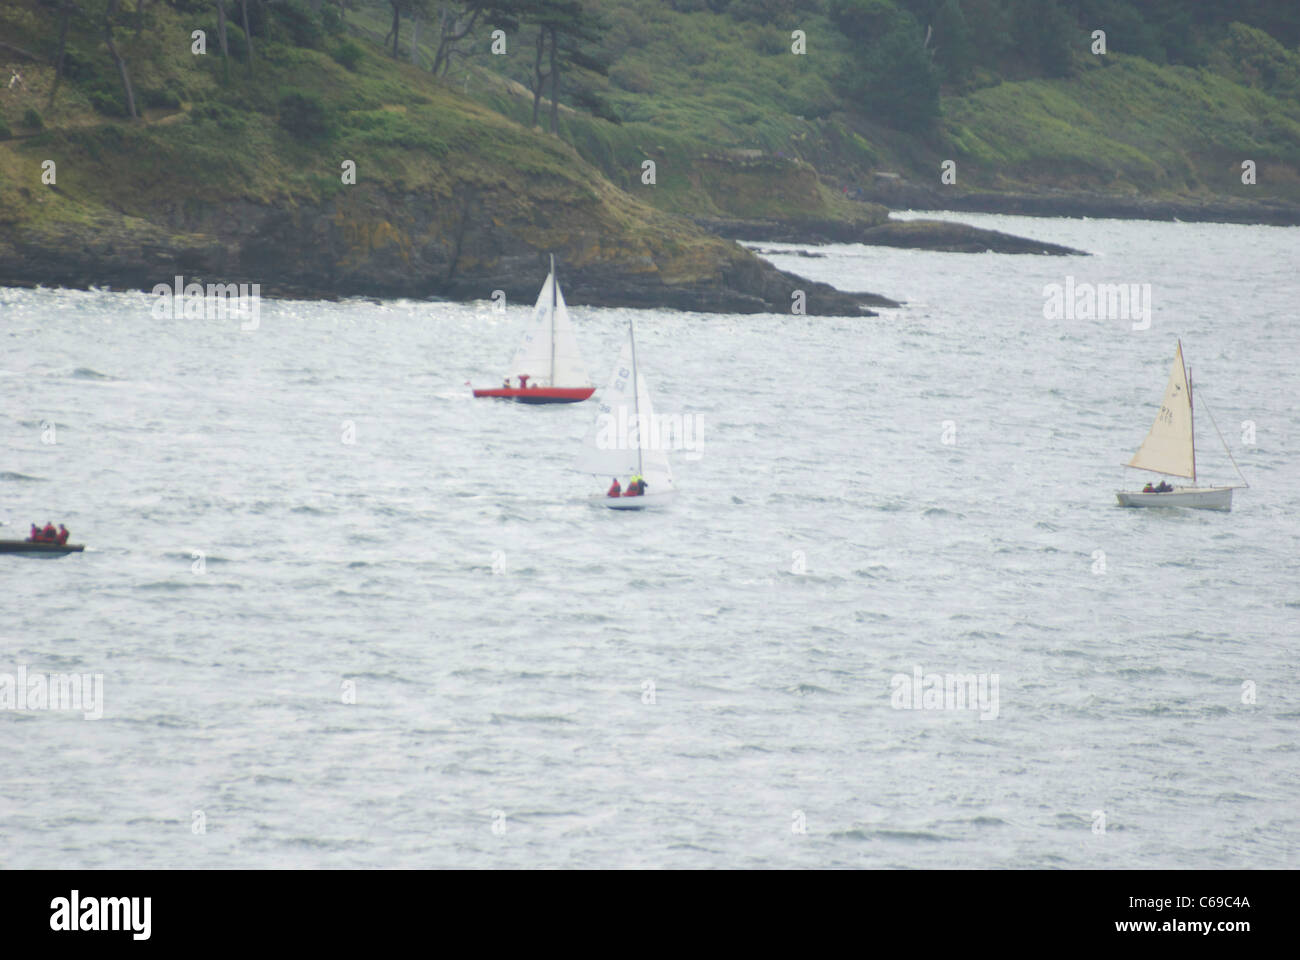 Sailing ships in the water off St Mawes Castle South Cornwall UK - Stock Image